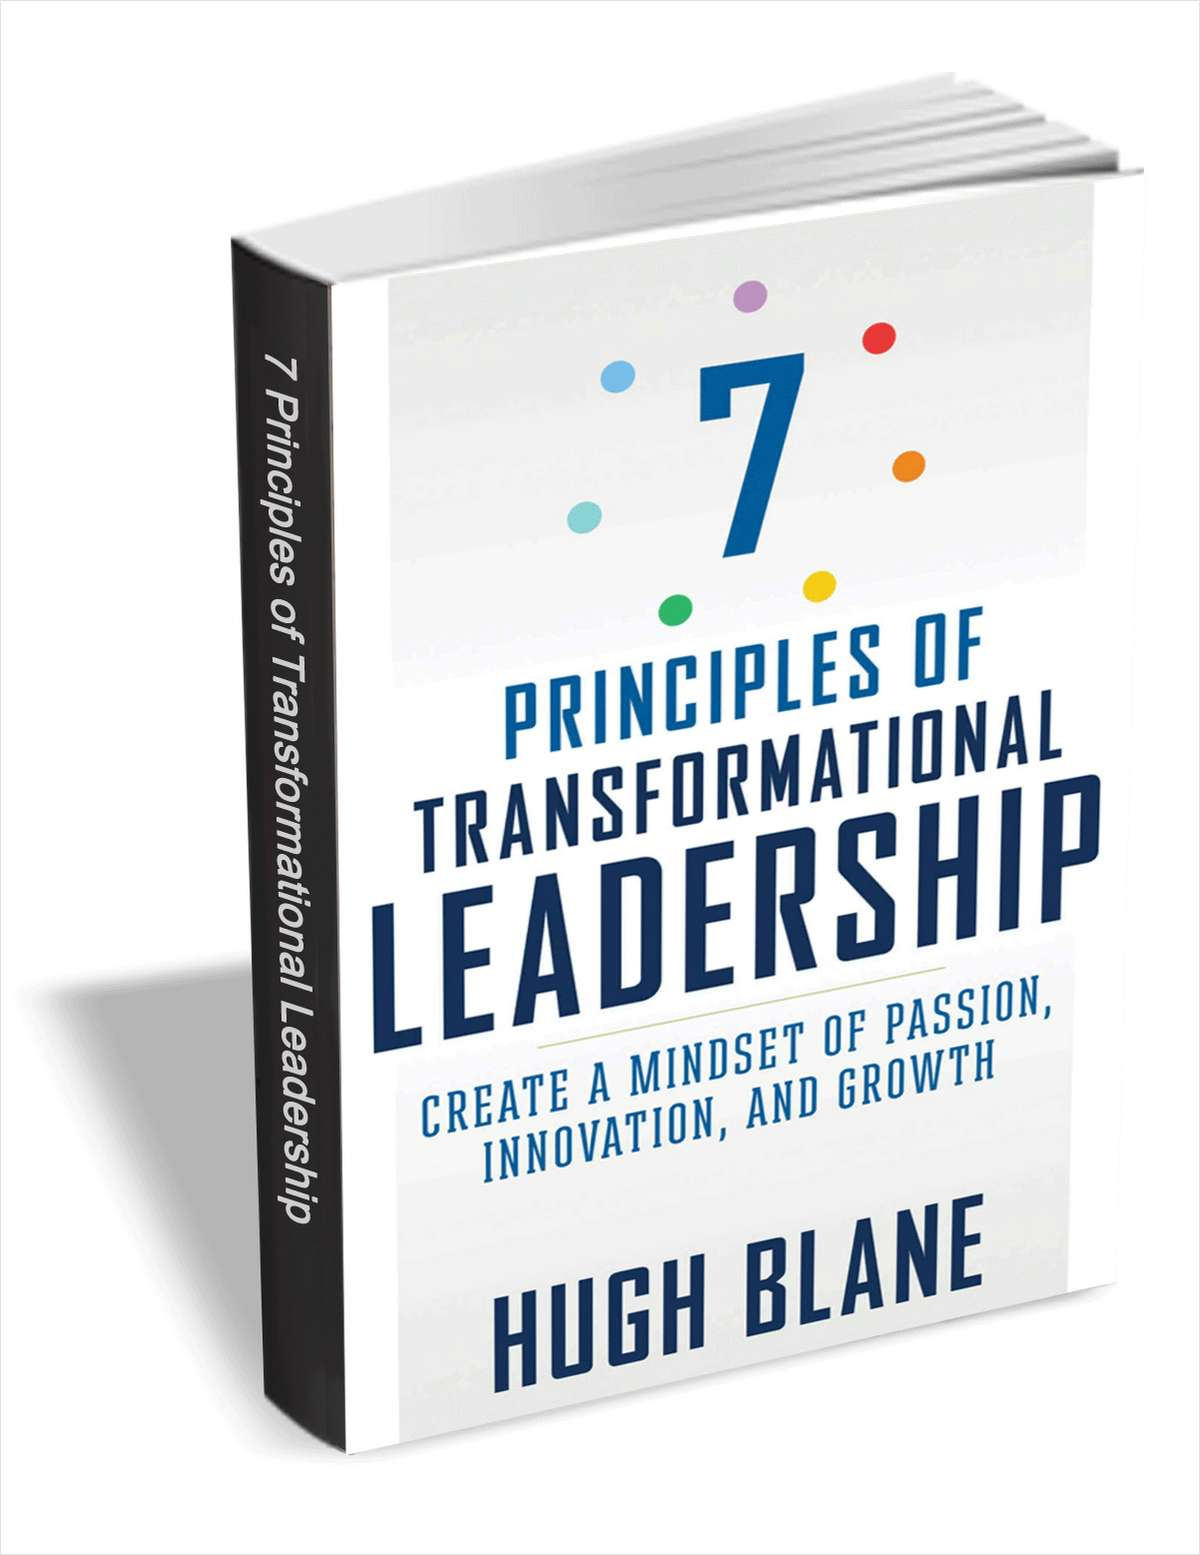 7 Principles of Transformational Leadership ($17 Value) FREE For a Limited Time